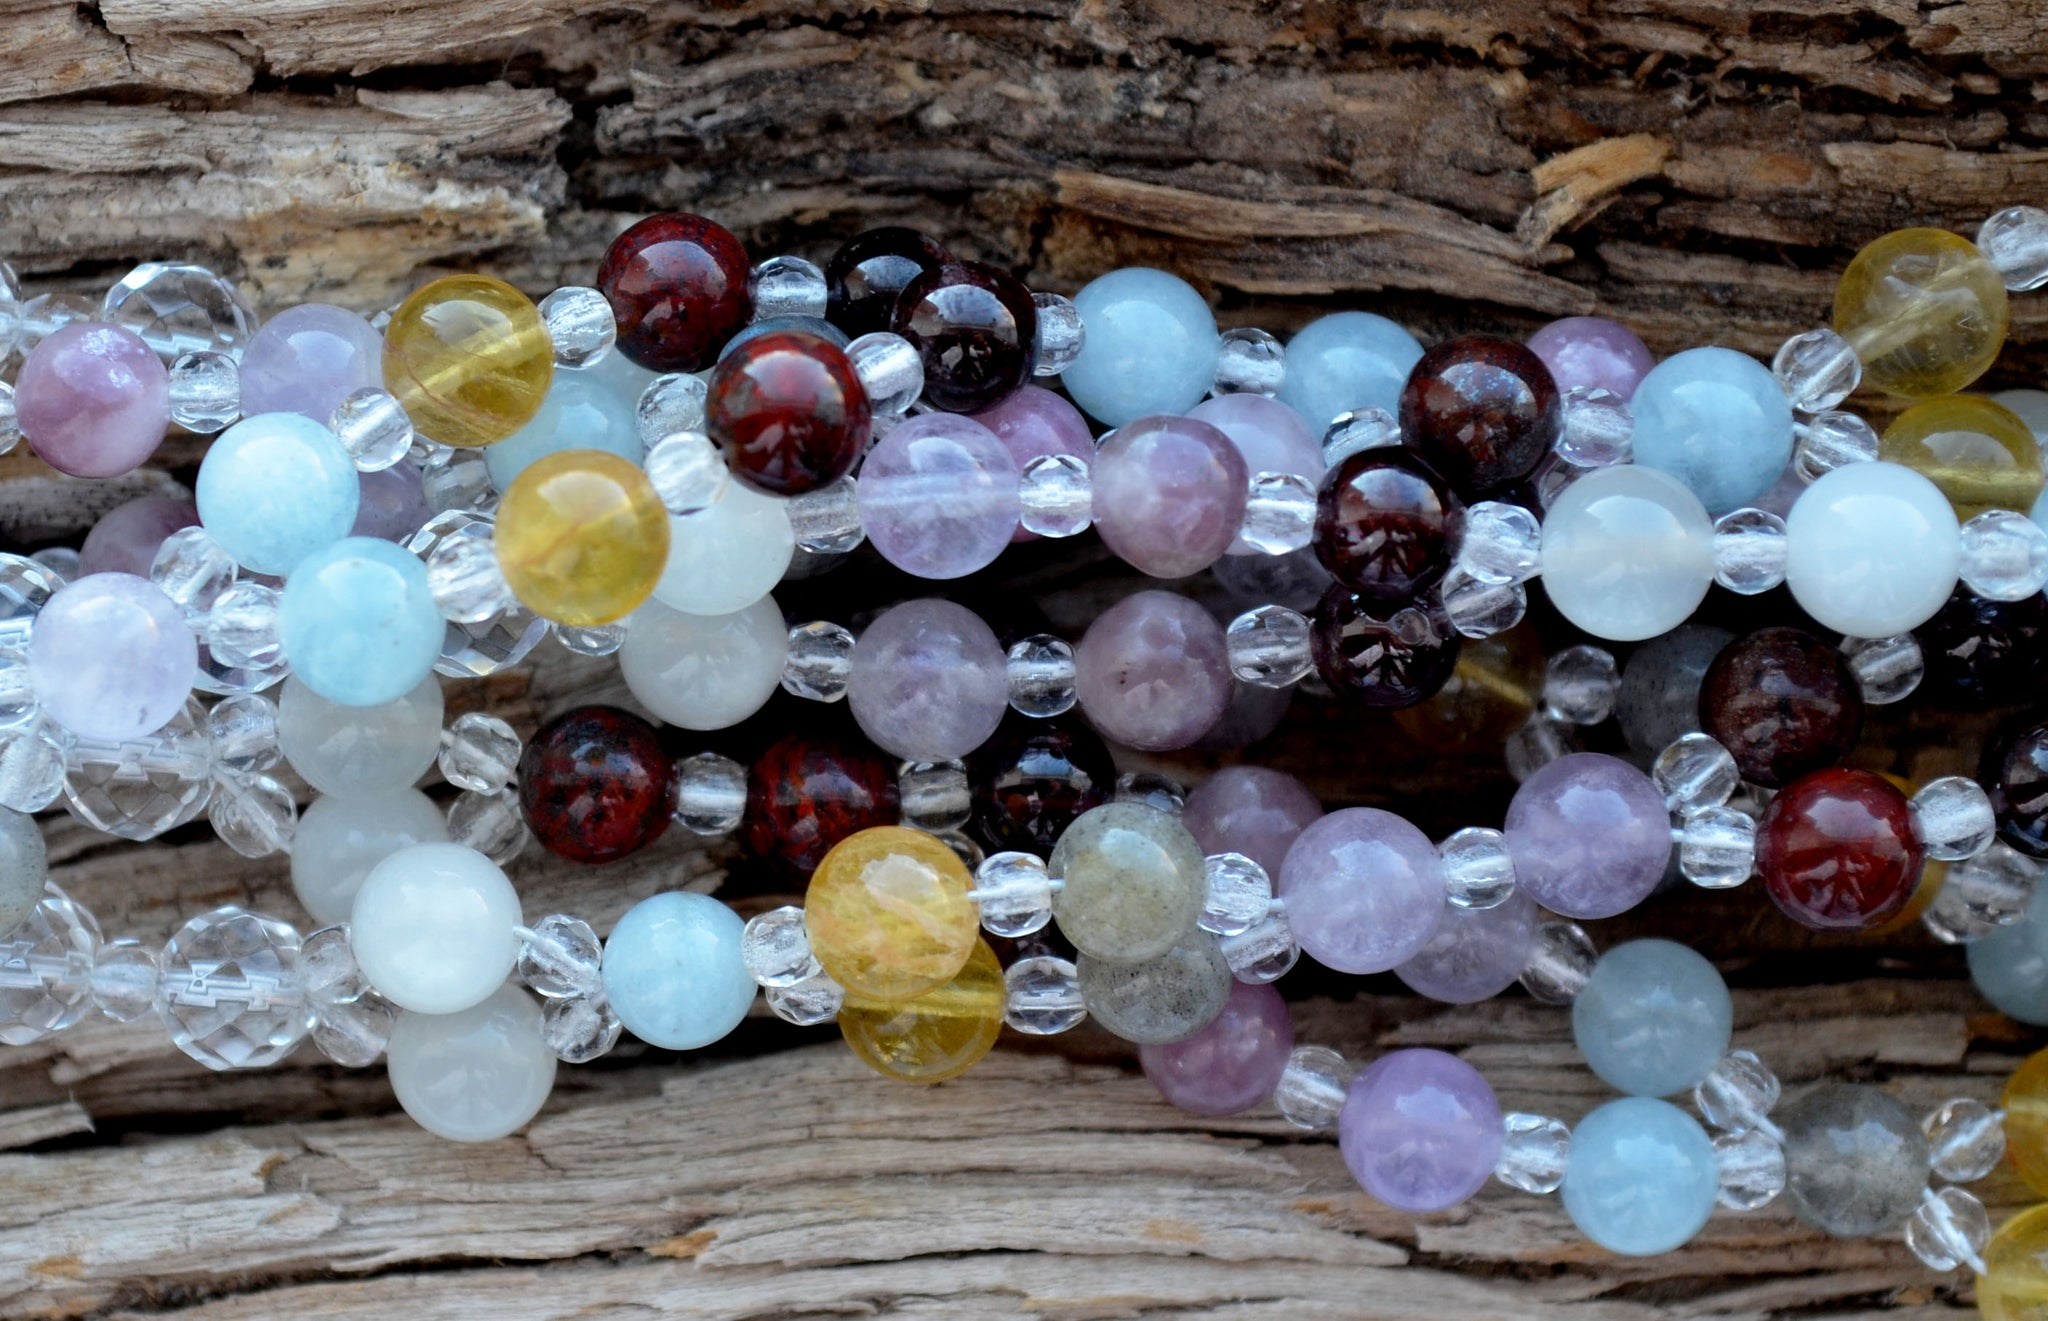 6mm Navratna: cool tones -  Lepidolite, Moonstone, Citrine, Garnet, Aquamarine etc  & Crystal